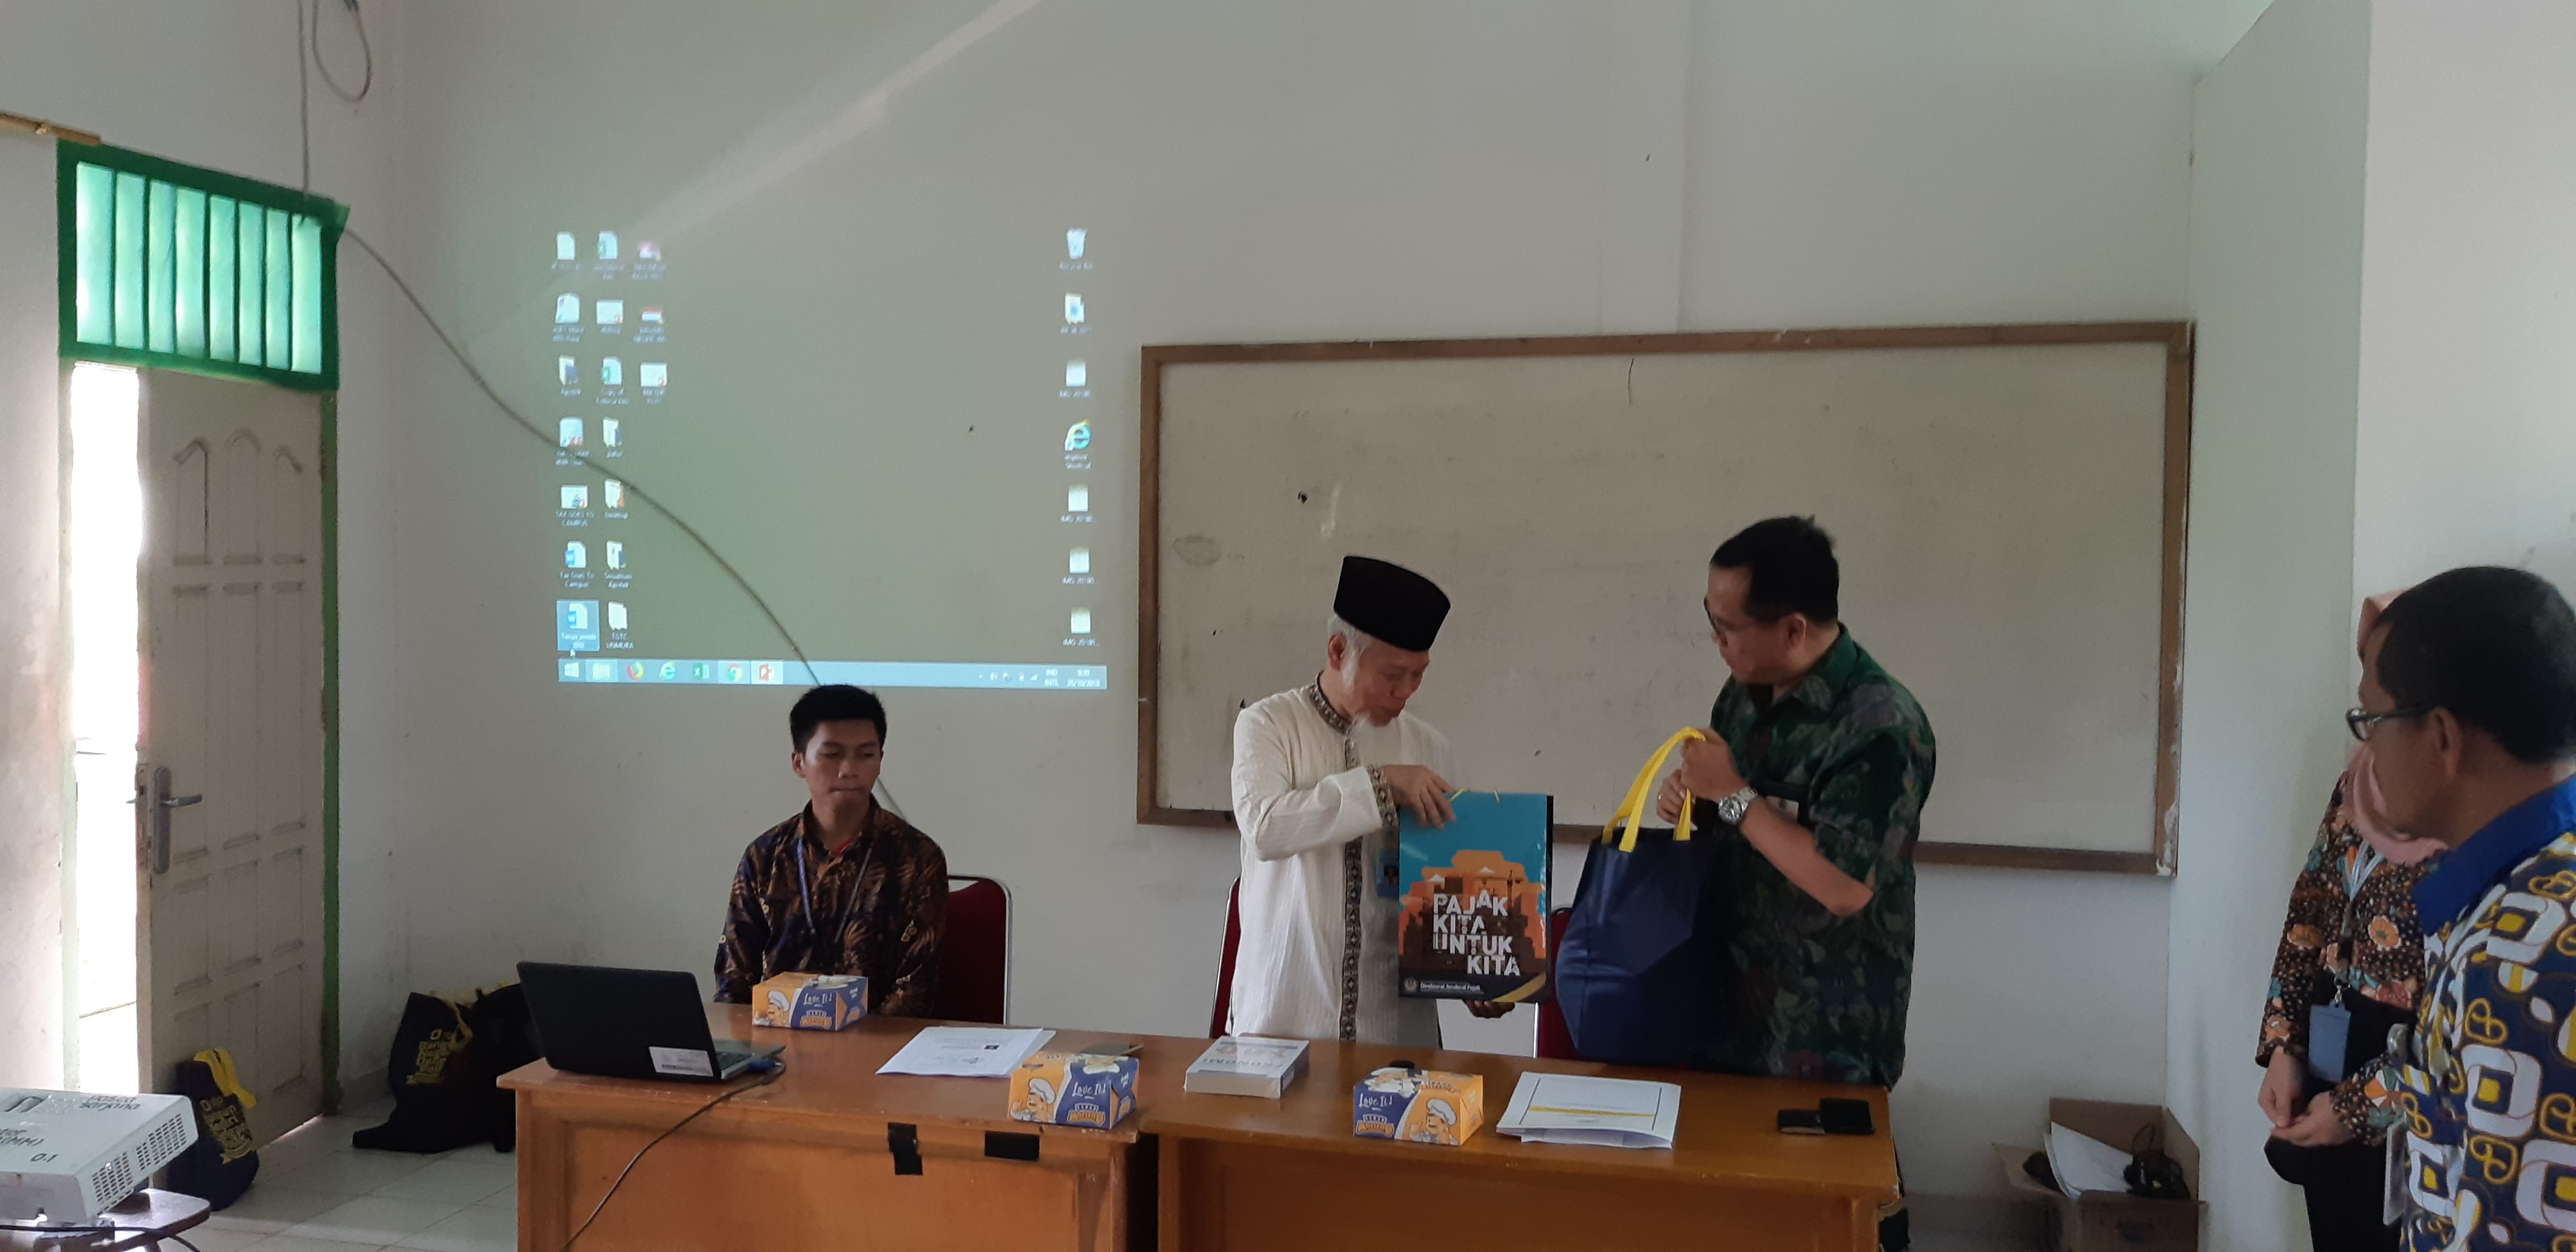 pajak goes to campus